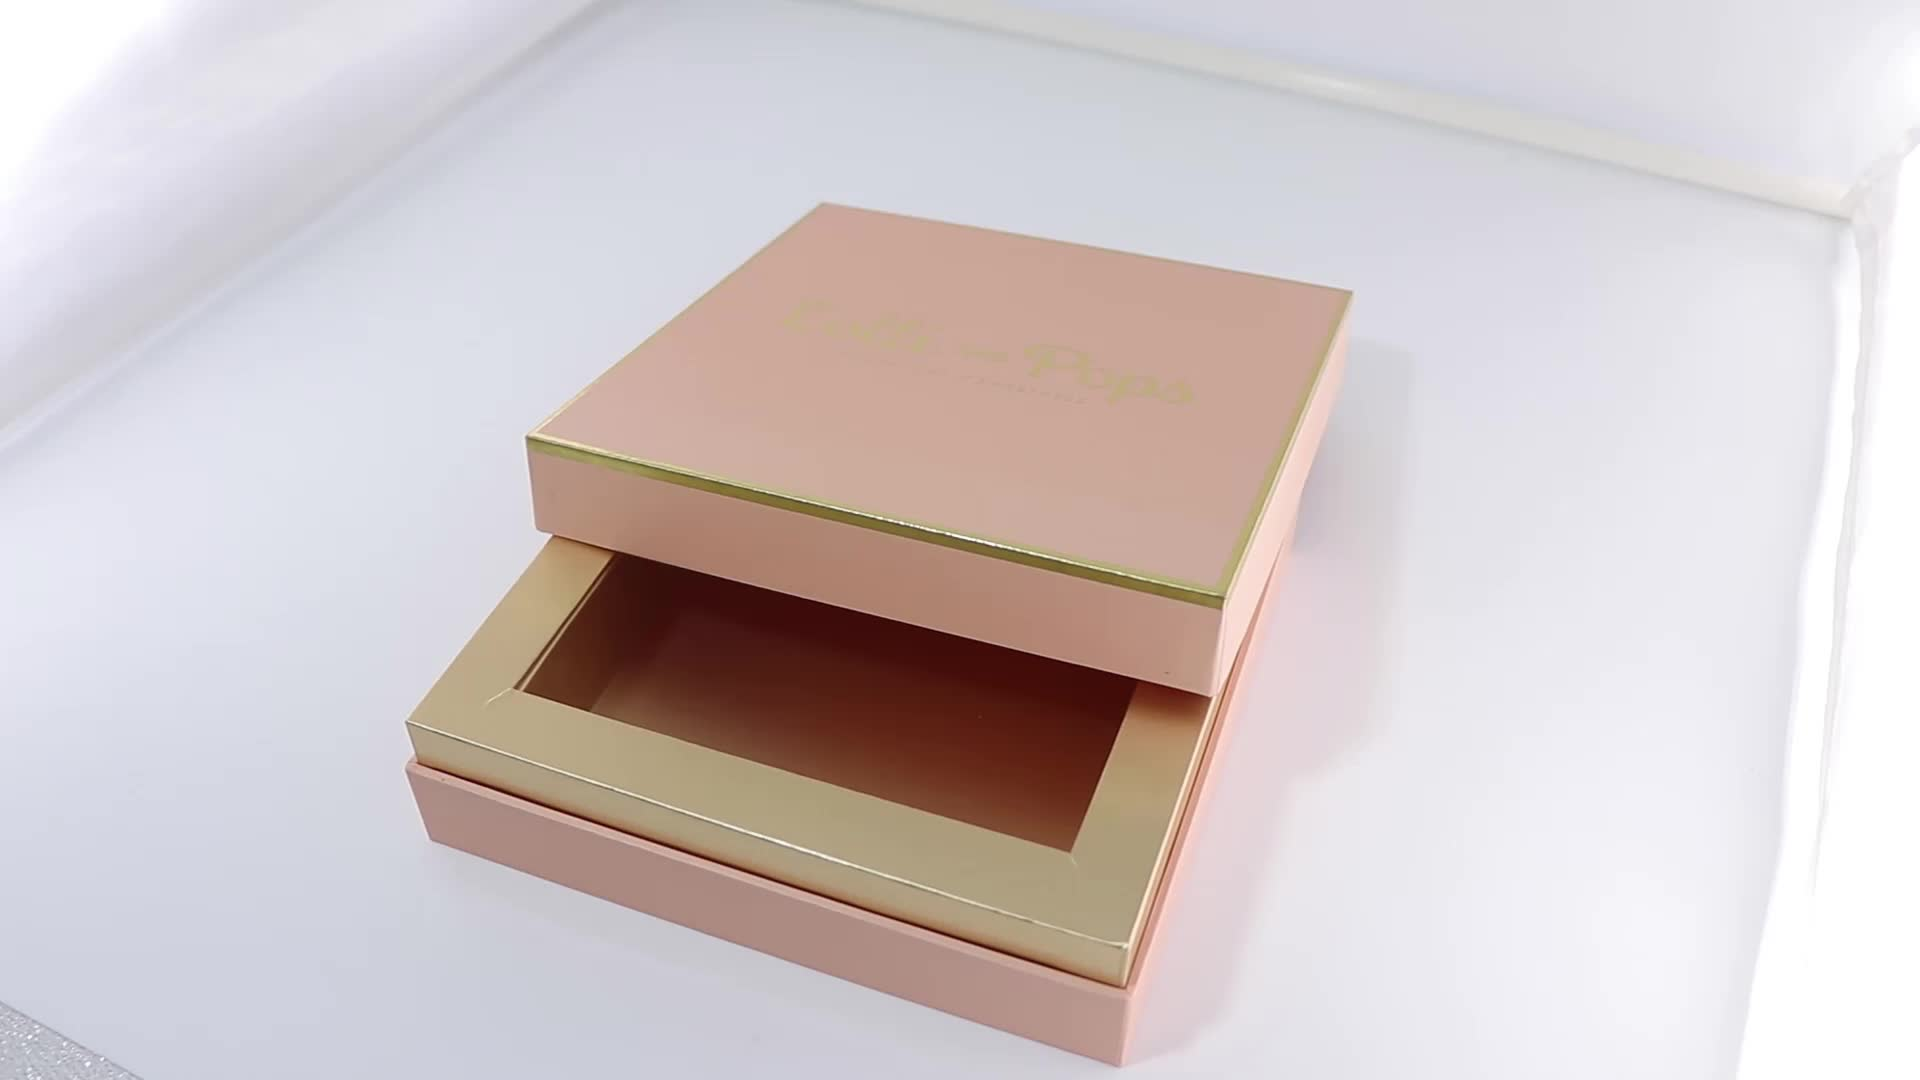 Get 100USD Coupon custom design wholesale high quality chocolate gift box luxury chocolate boxes